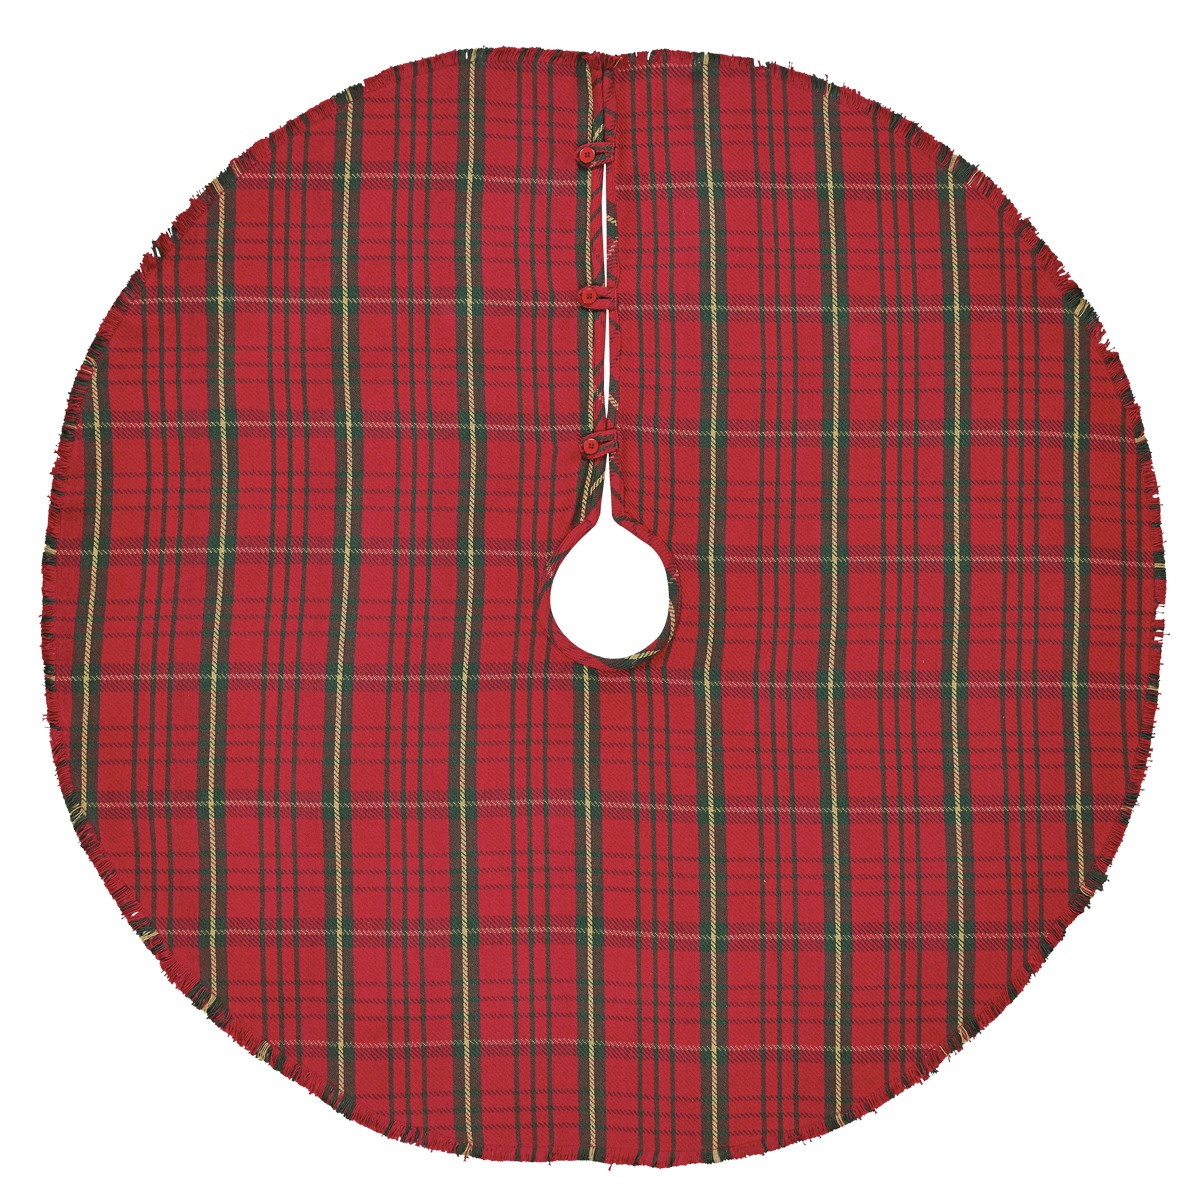 Red Rustic Christmas Decor Jasper Cotton Cotton Burlap Plaid Tree Skirt